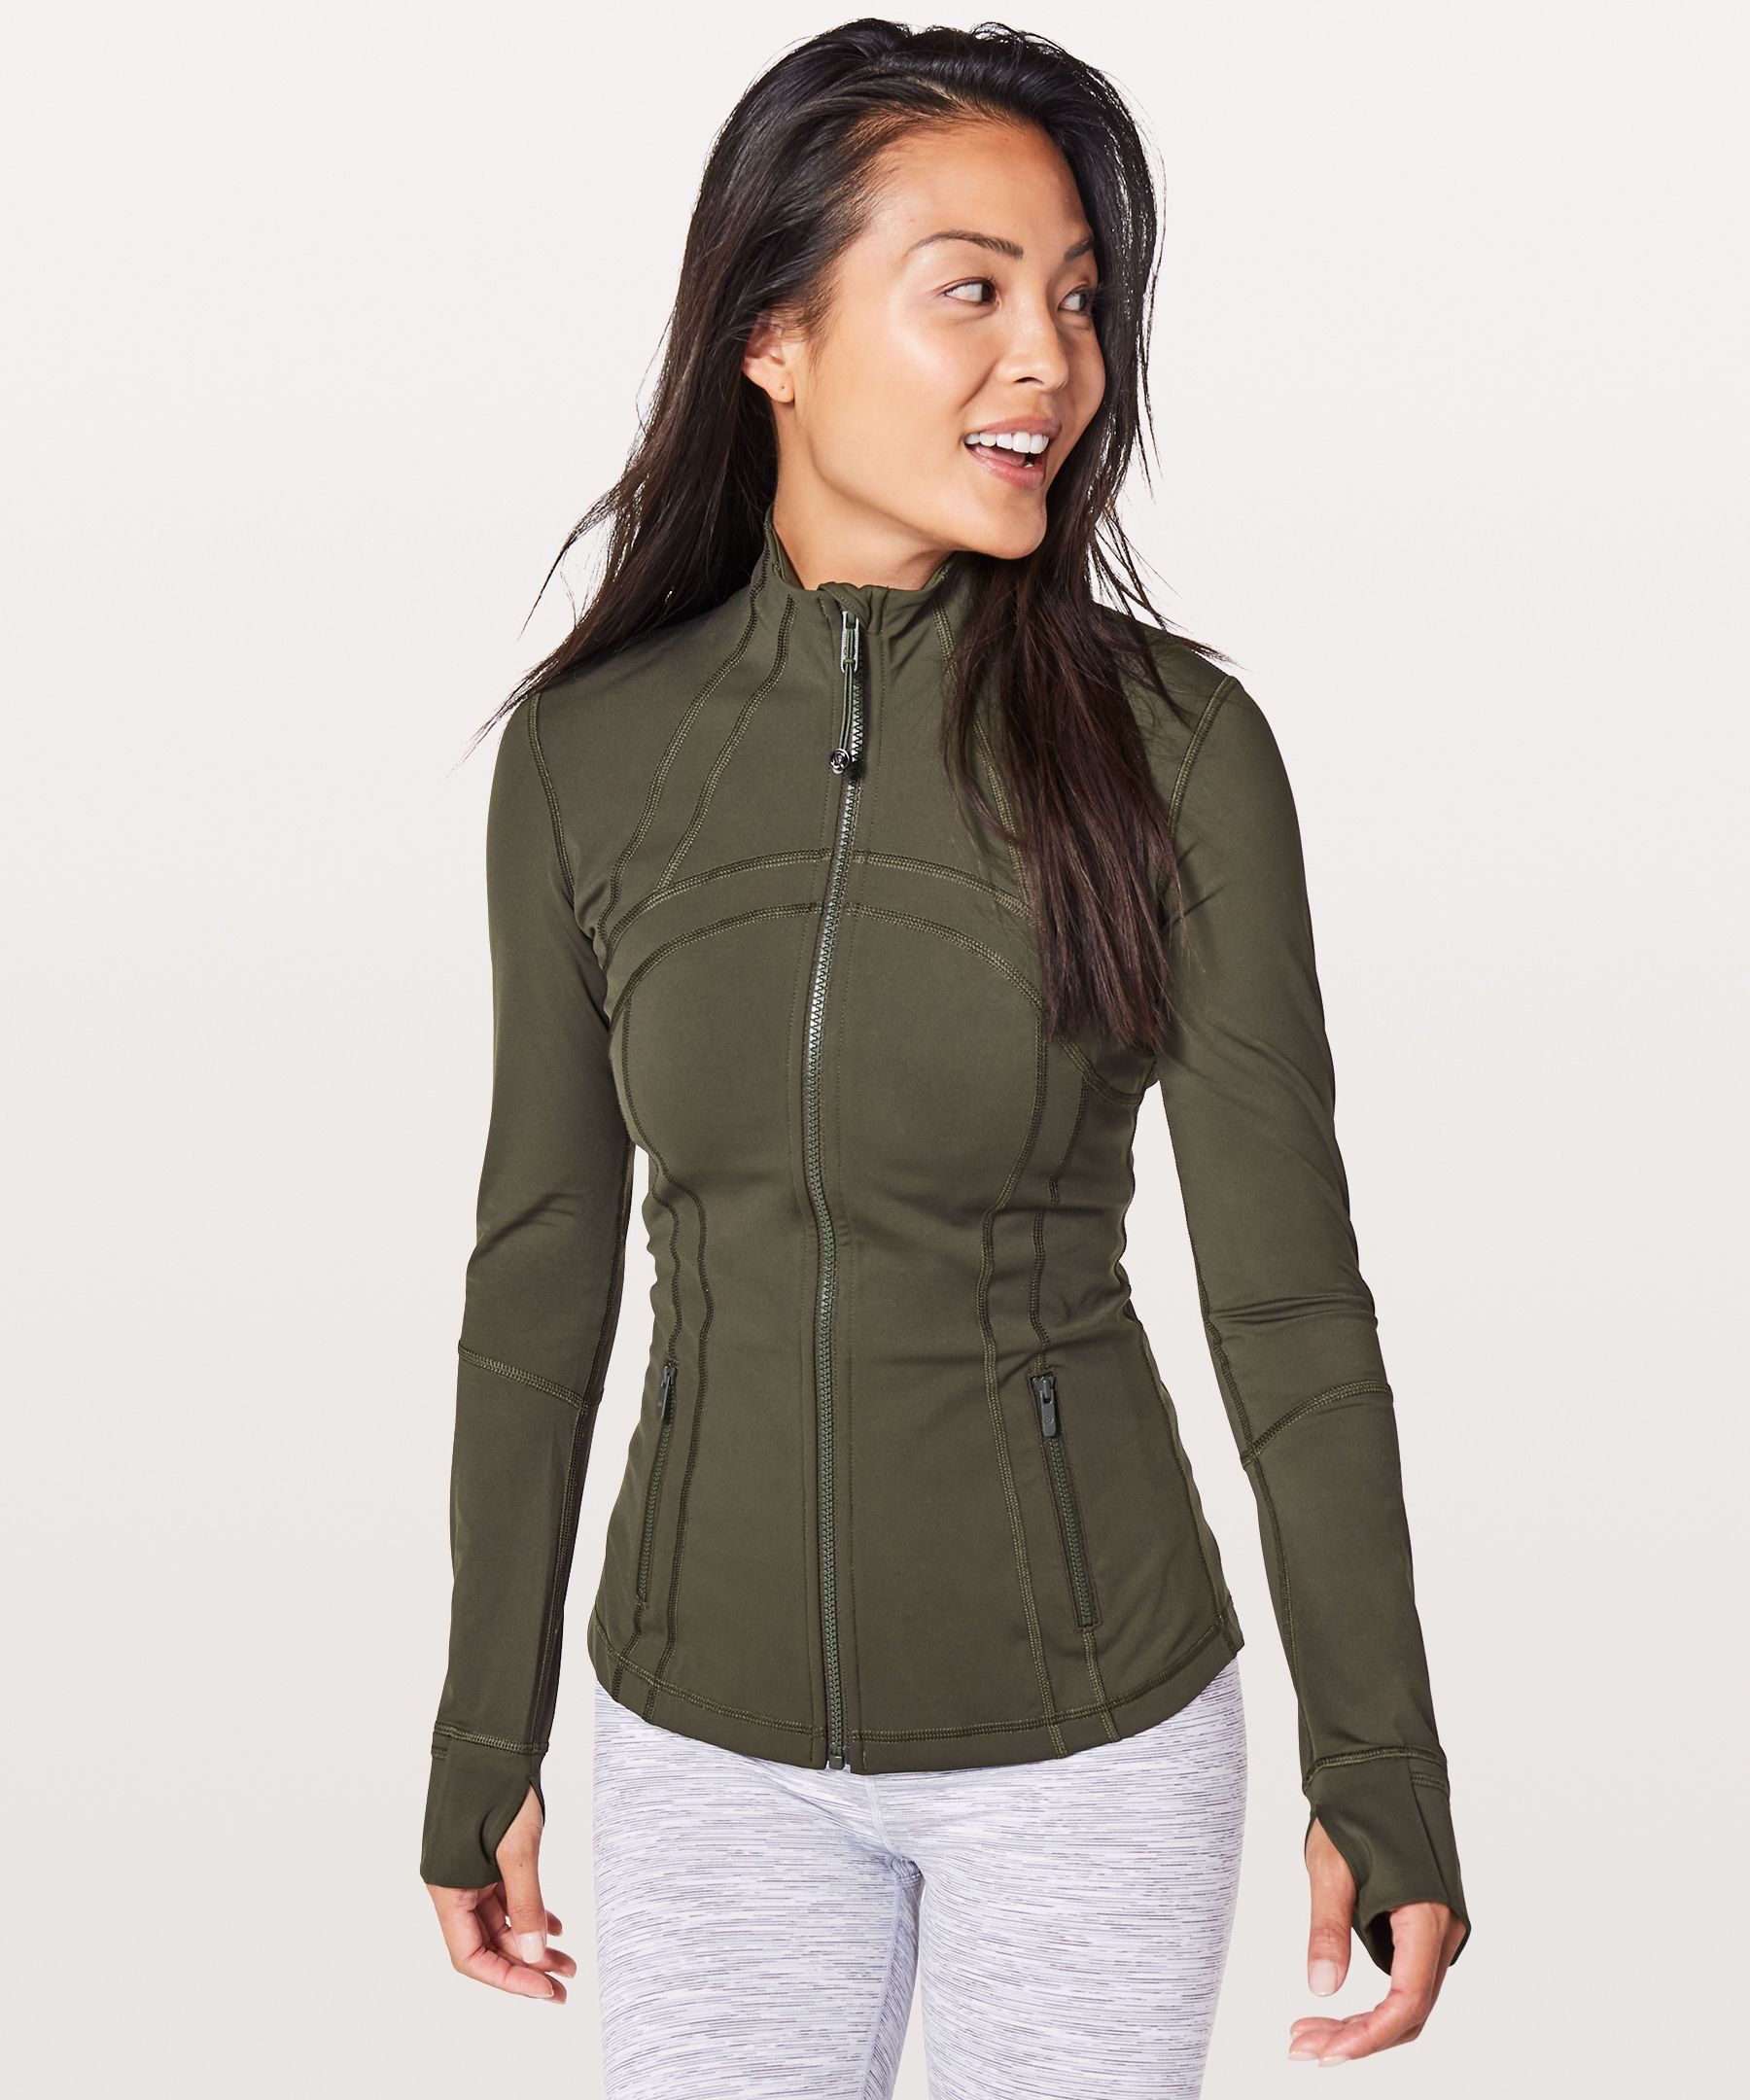 Shop The Define Jacket Nulux Women S Jackets Outerwear Made From A Silky Fabric That S Cool Against The Skin Technical Clothing Clothes Jackets For Women [ 2160 x 1800 Pixel ]